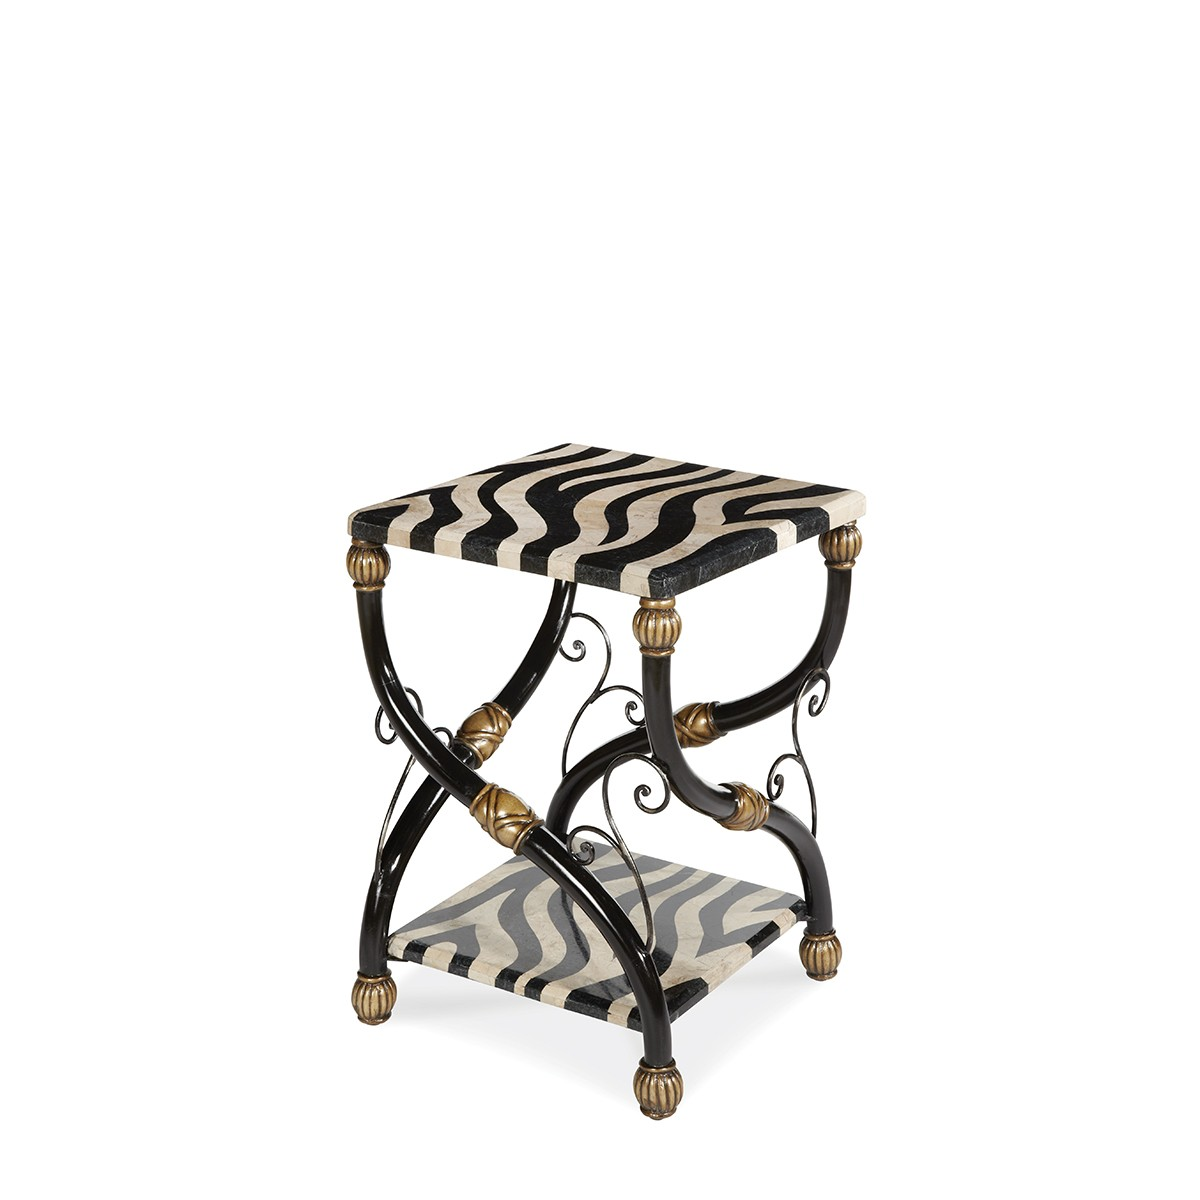 aico discovery zebra accent table act caro wood with metal legs antique legged long farmhouse dining small skinny chinese ceramic lamps vitra style chair trestle bench iron sofa